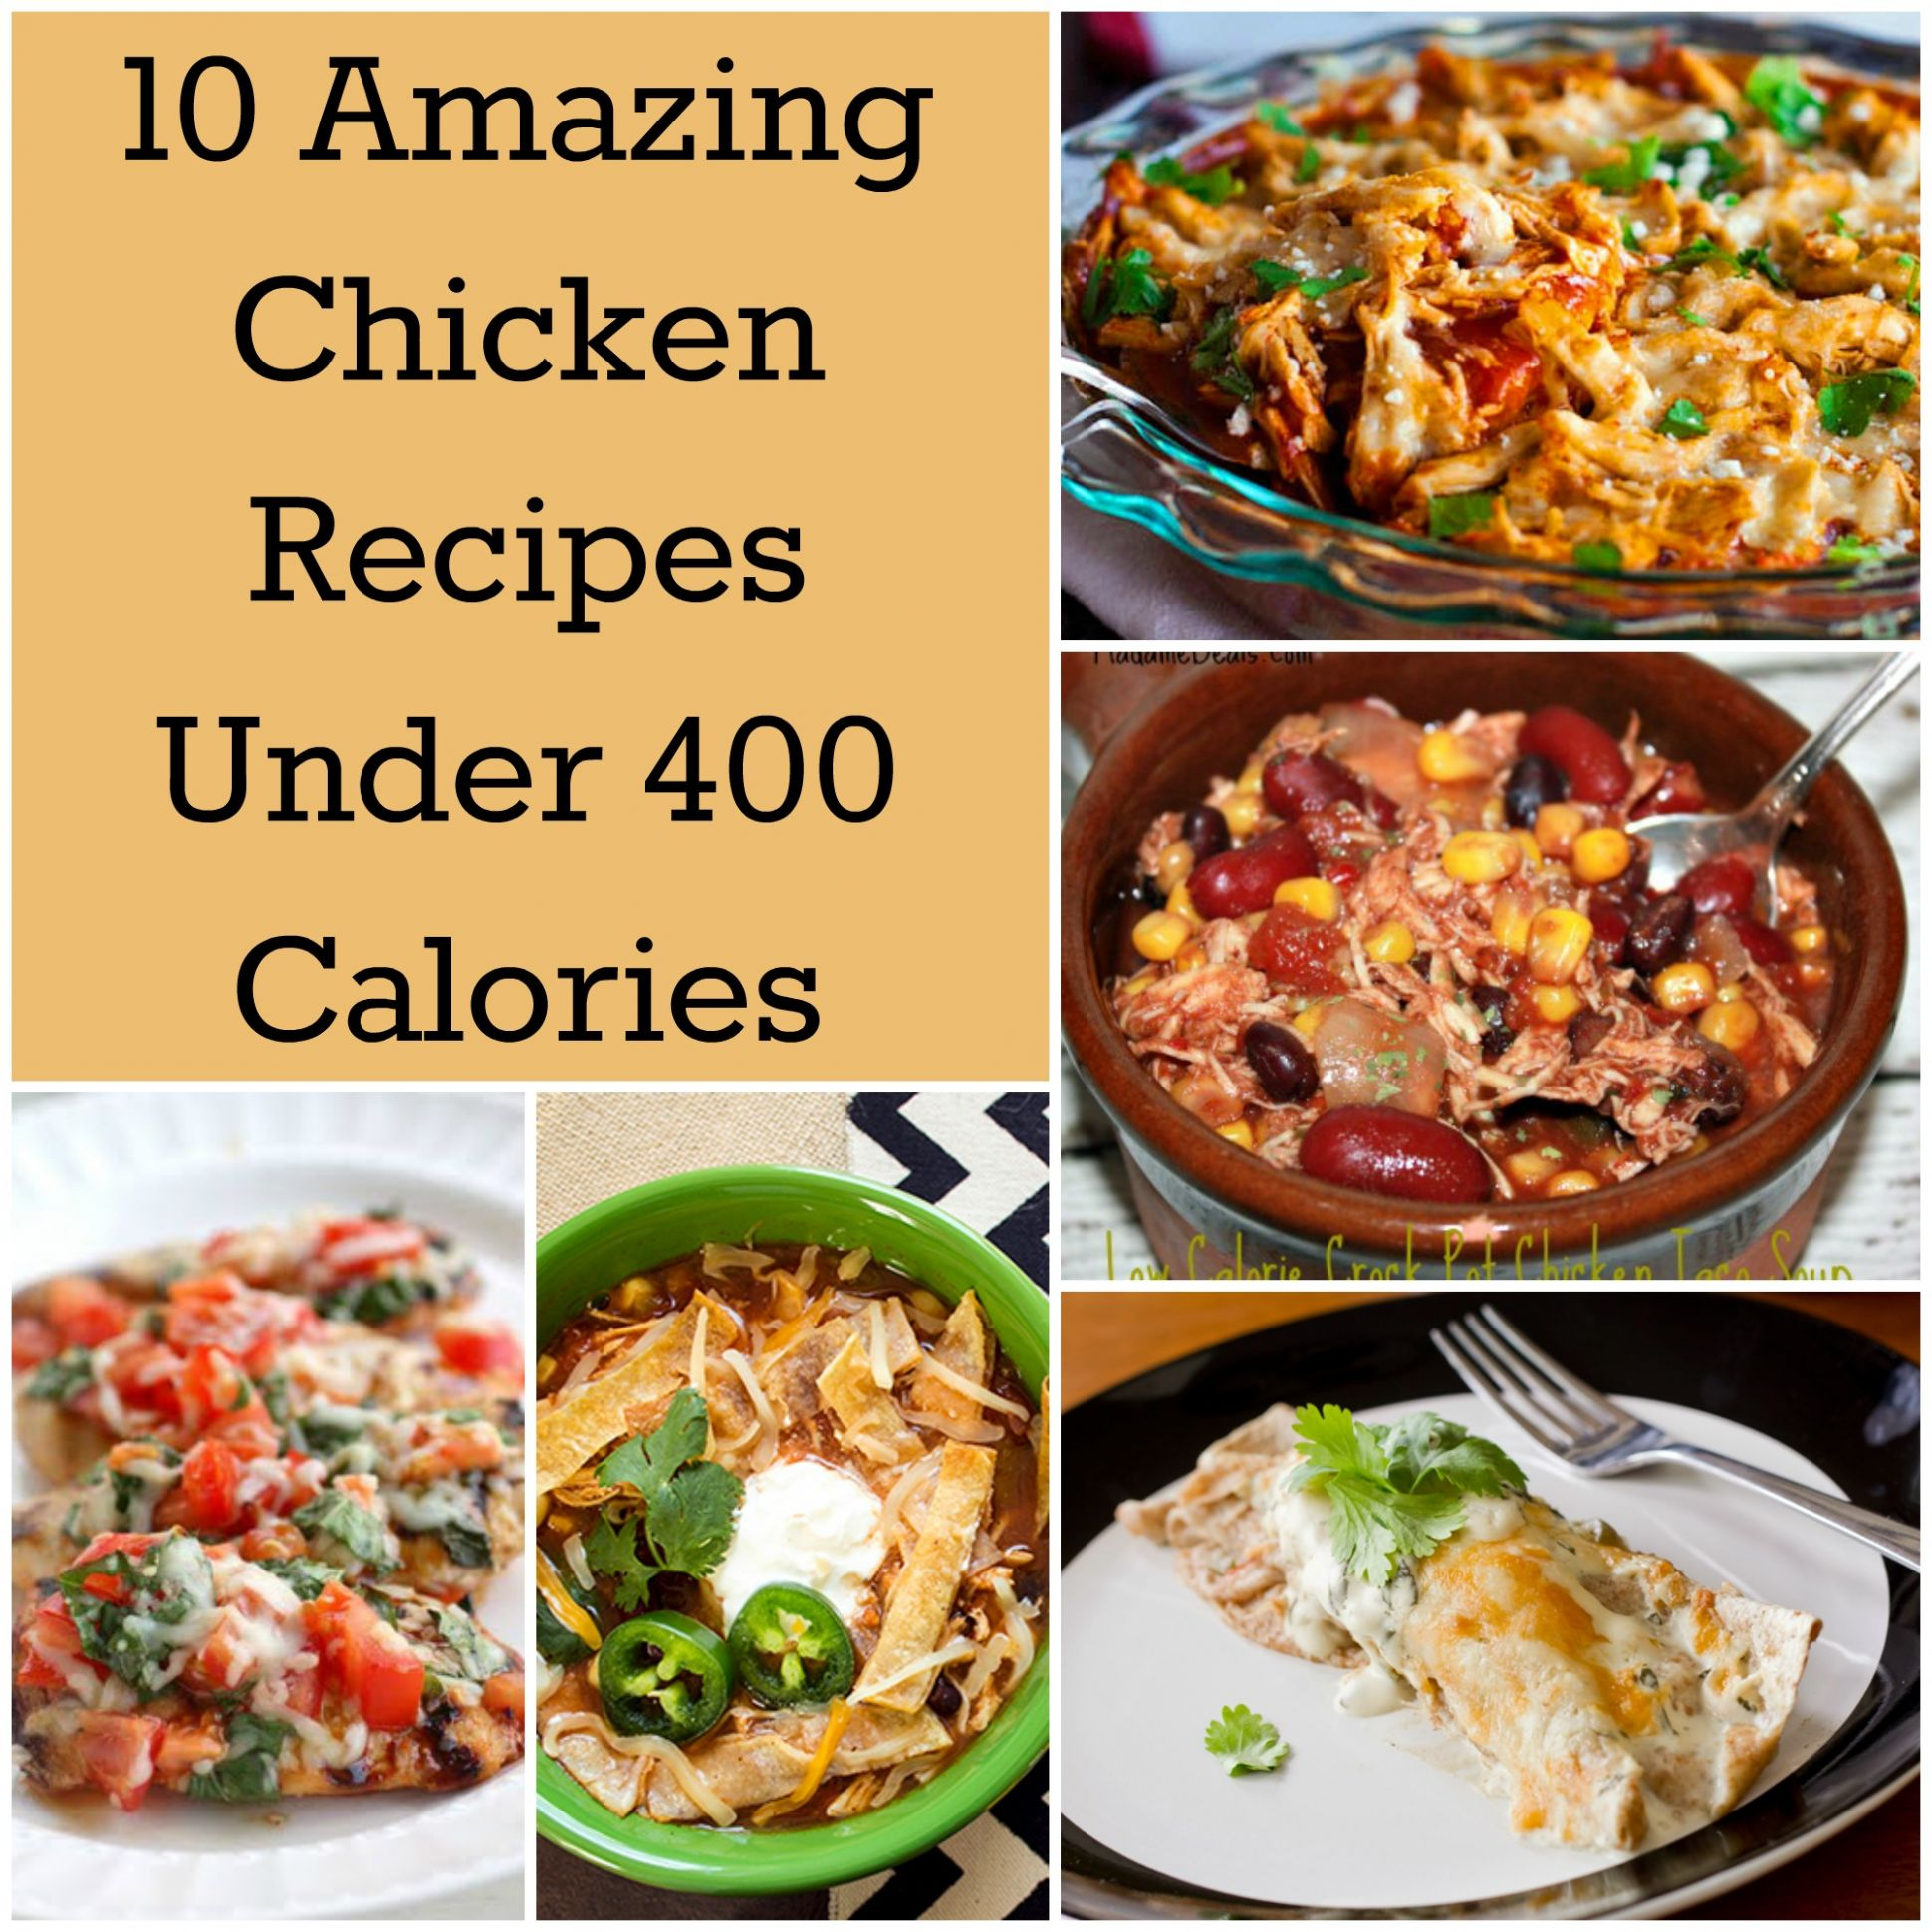 10 Amazing Chicken Recipes Under 10 Calories | How Does She - Recipes Dinner Under 400 Calories